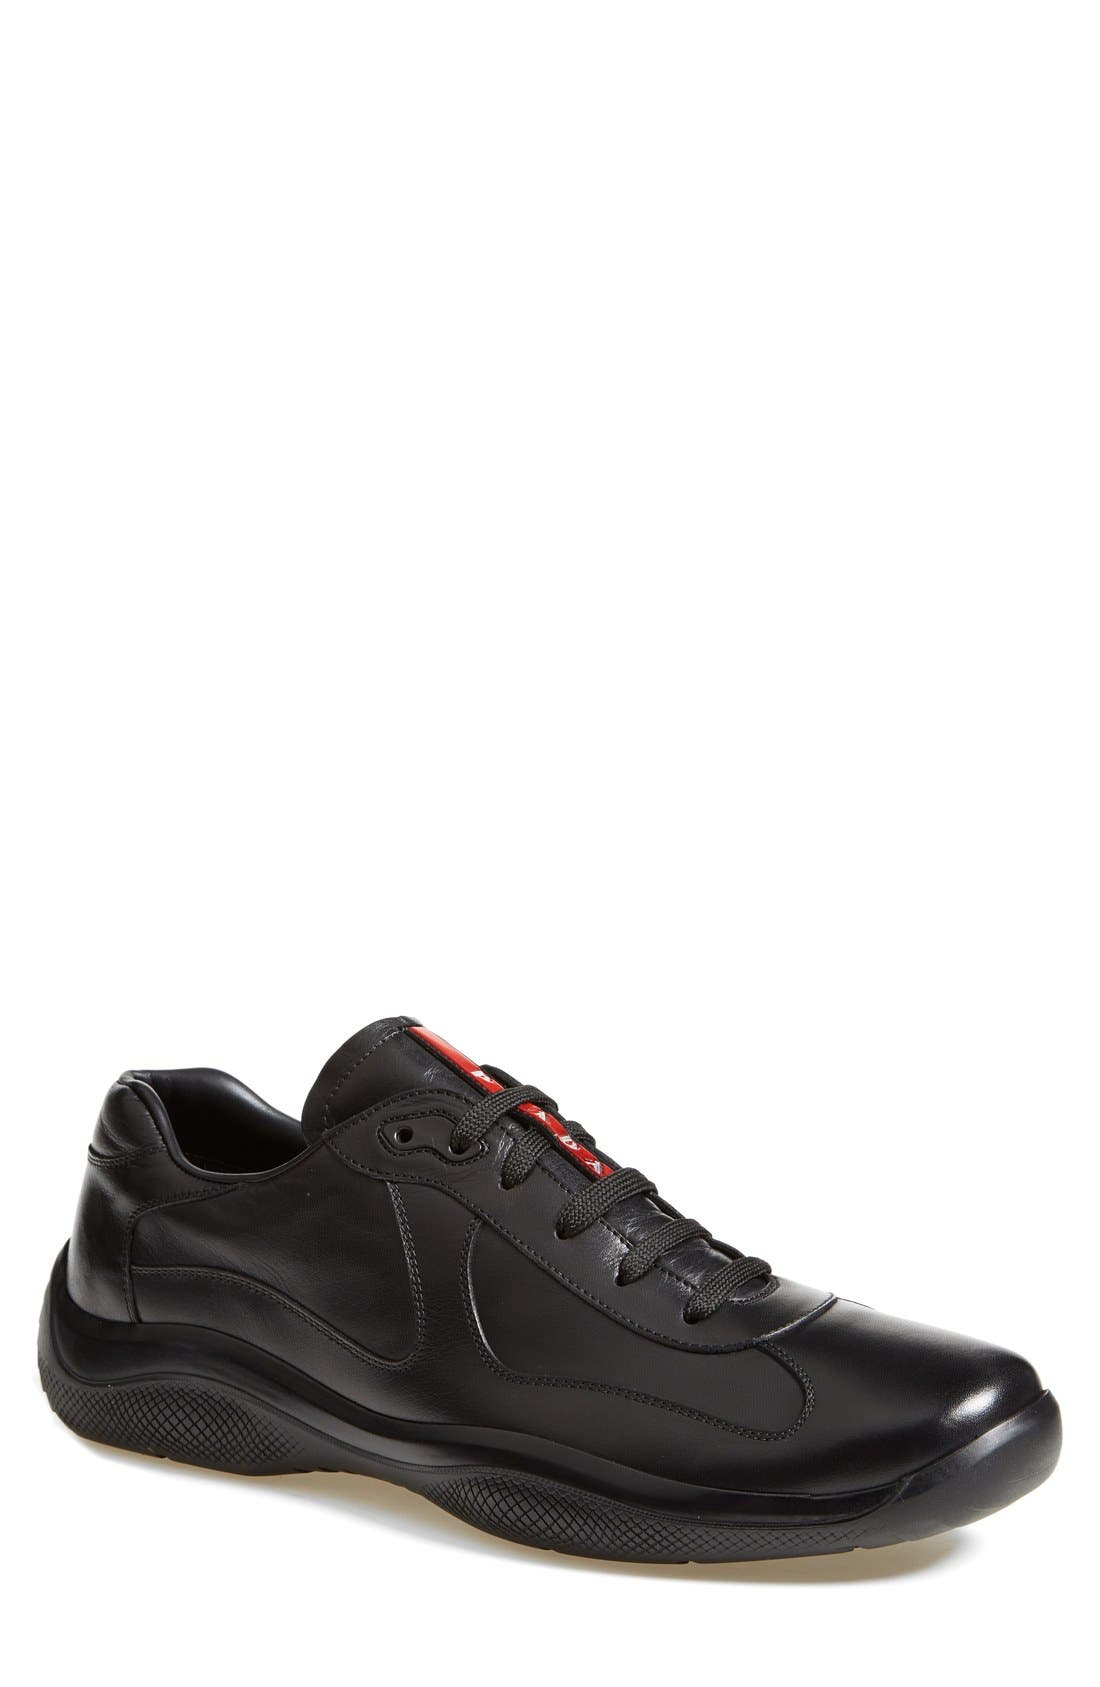 'Punta Ala' Leather Sneaker,                         Main,                         color, Black